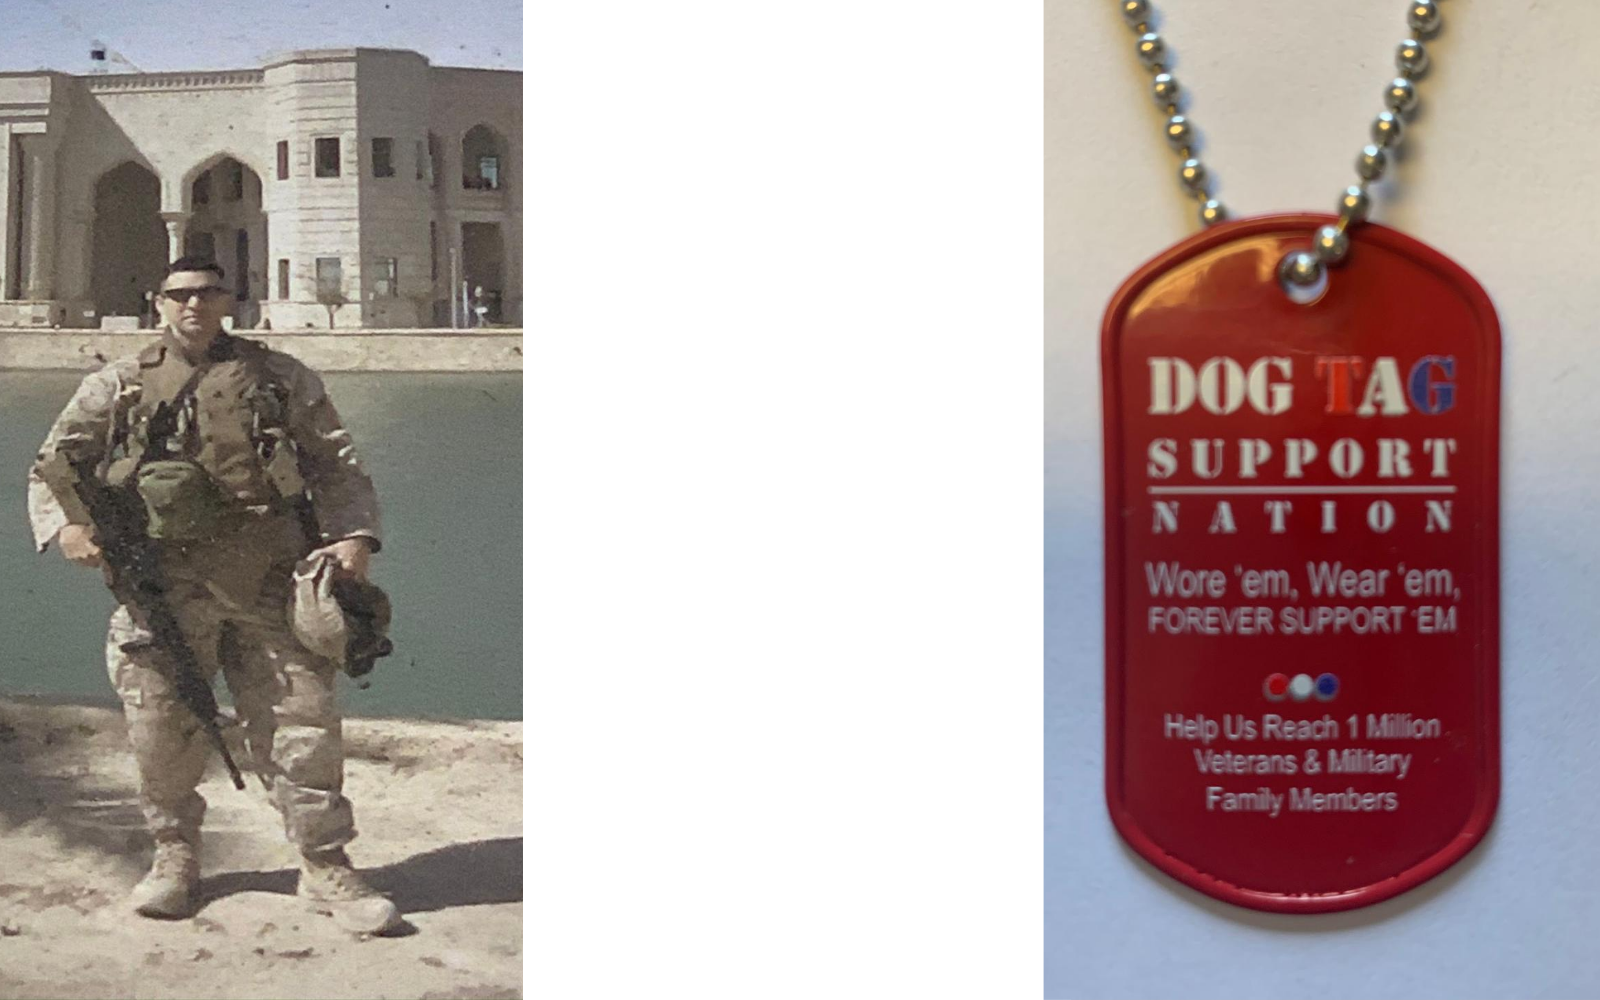 For $19 a Month Make a difference and help us Find Veterans & Fund Life Saving Programs image